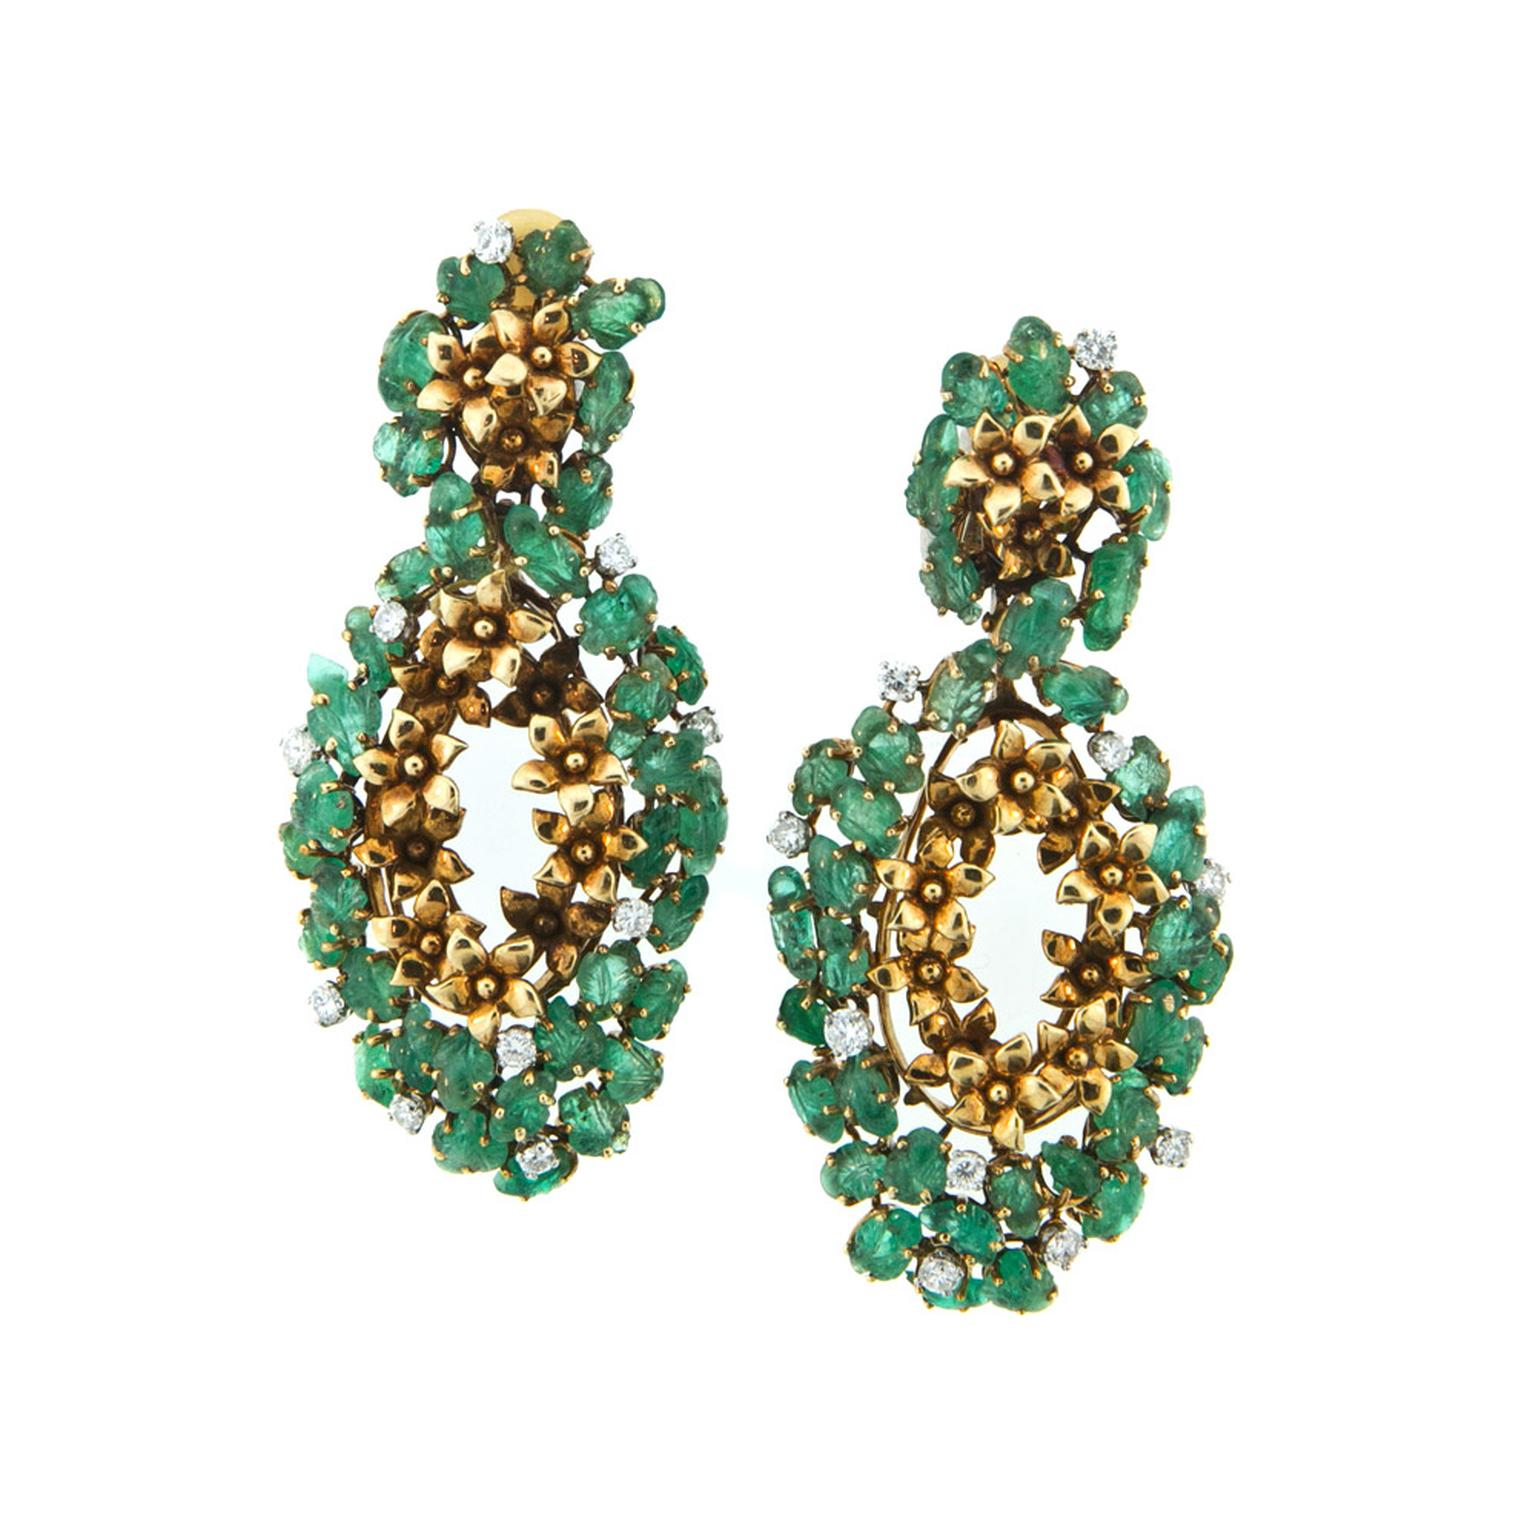 Simon Teakle emerald earrings